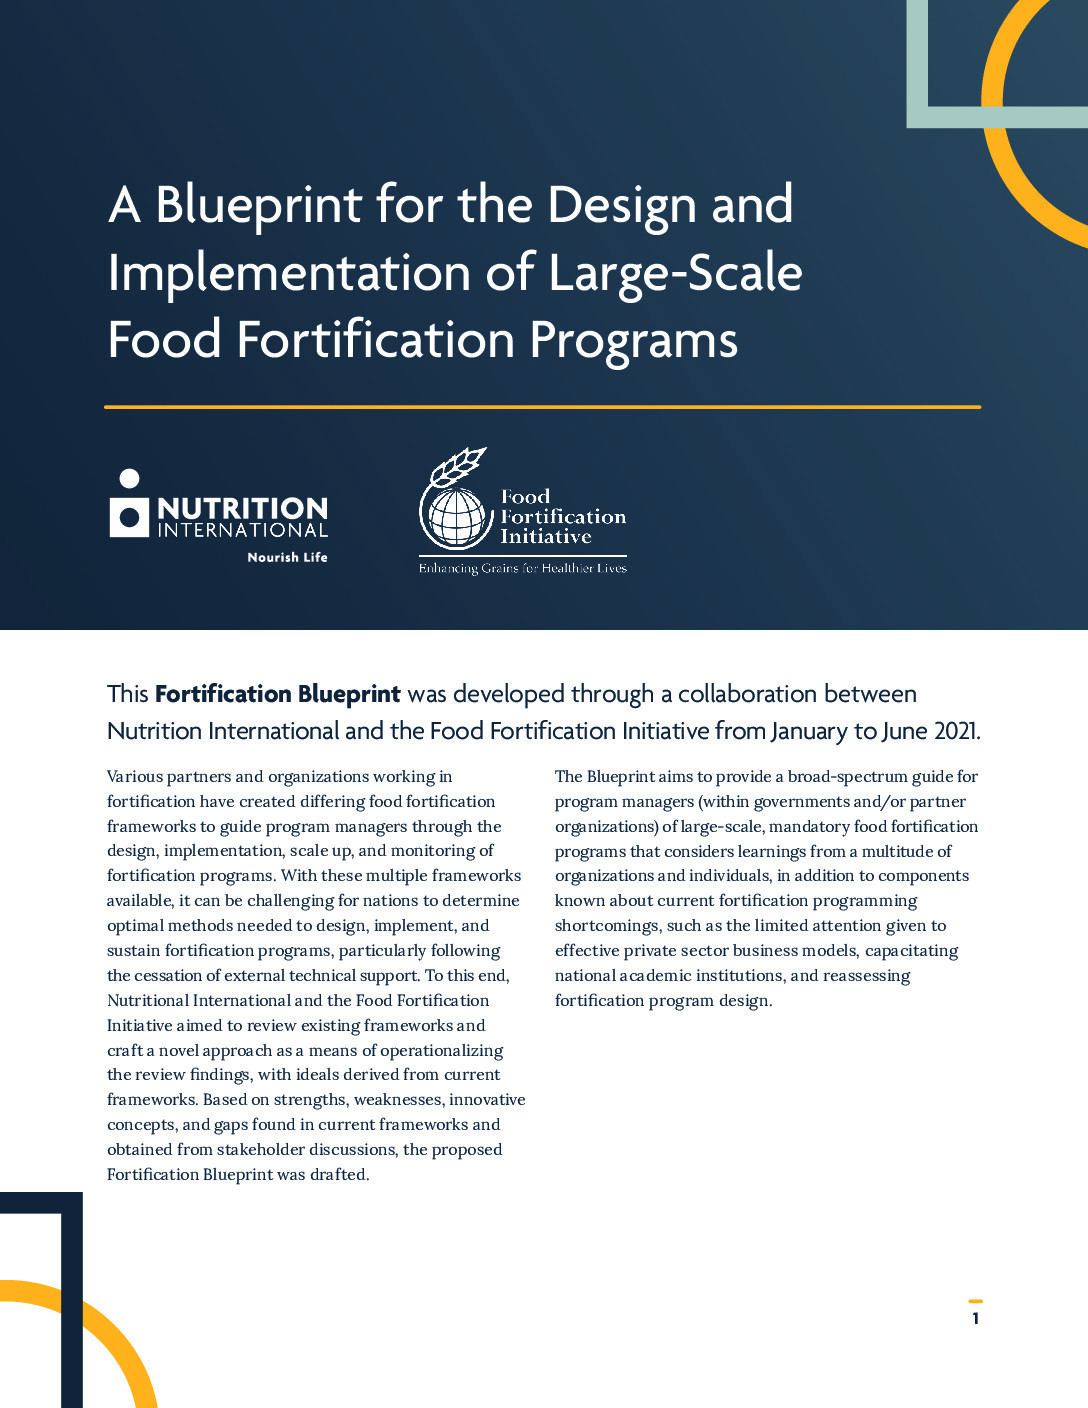 A Blueprint for the Design and Implementation of Large-Scale Food Fortification Programs thumbnail